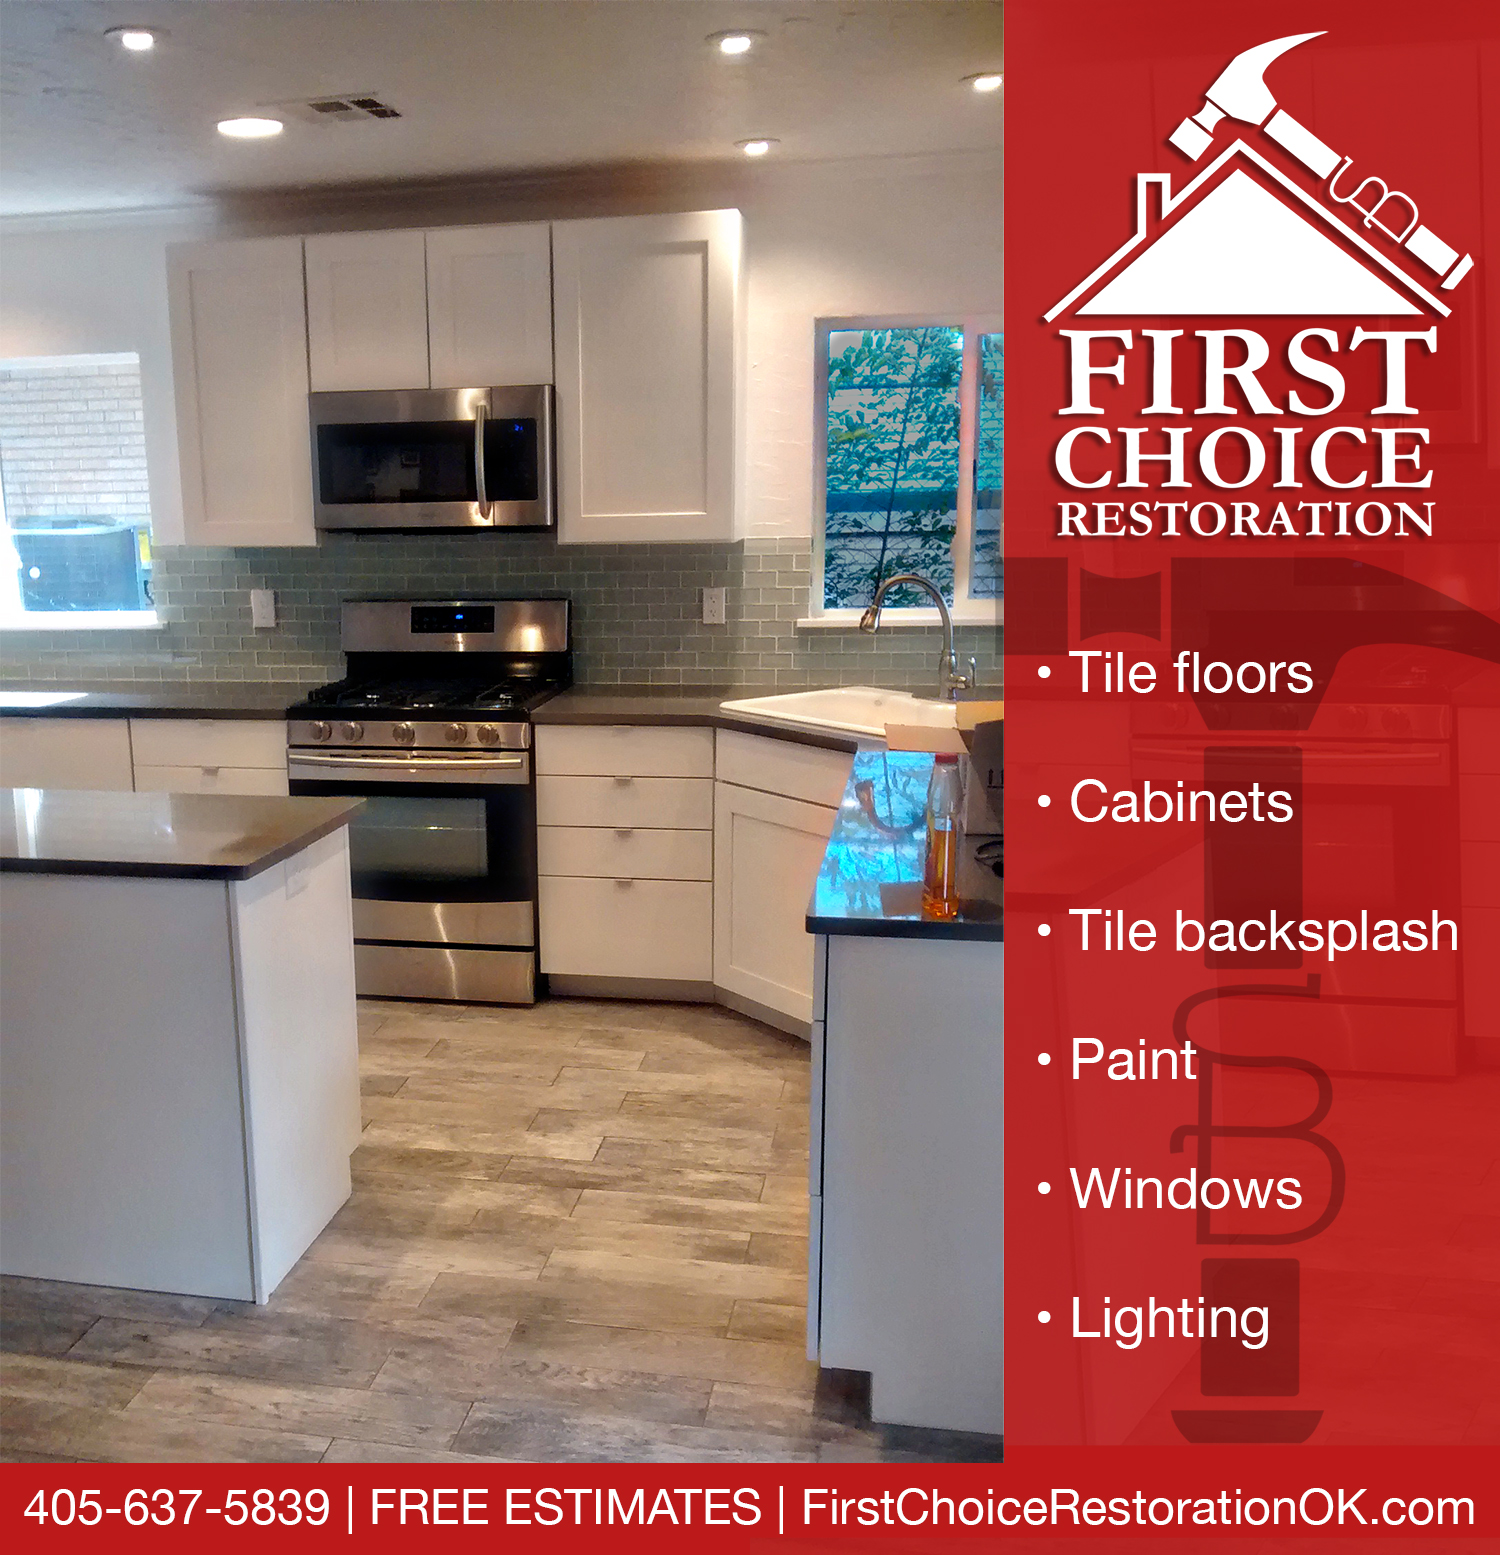 kitchen remodel okc kraftmaid cabinets remodeling in first choice restoration restorations